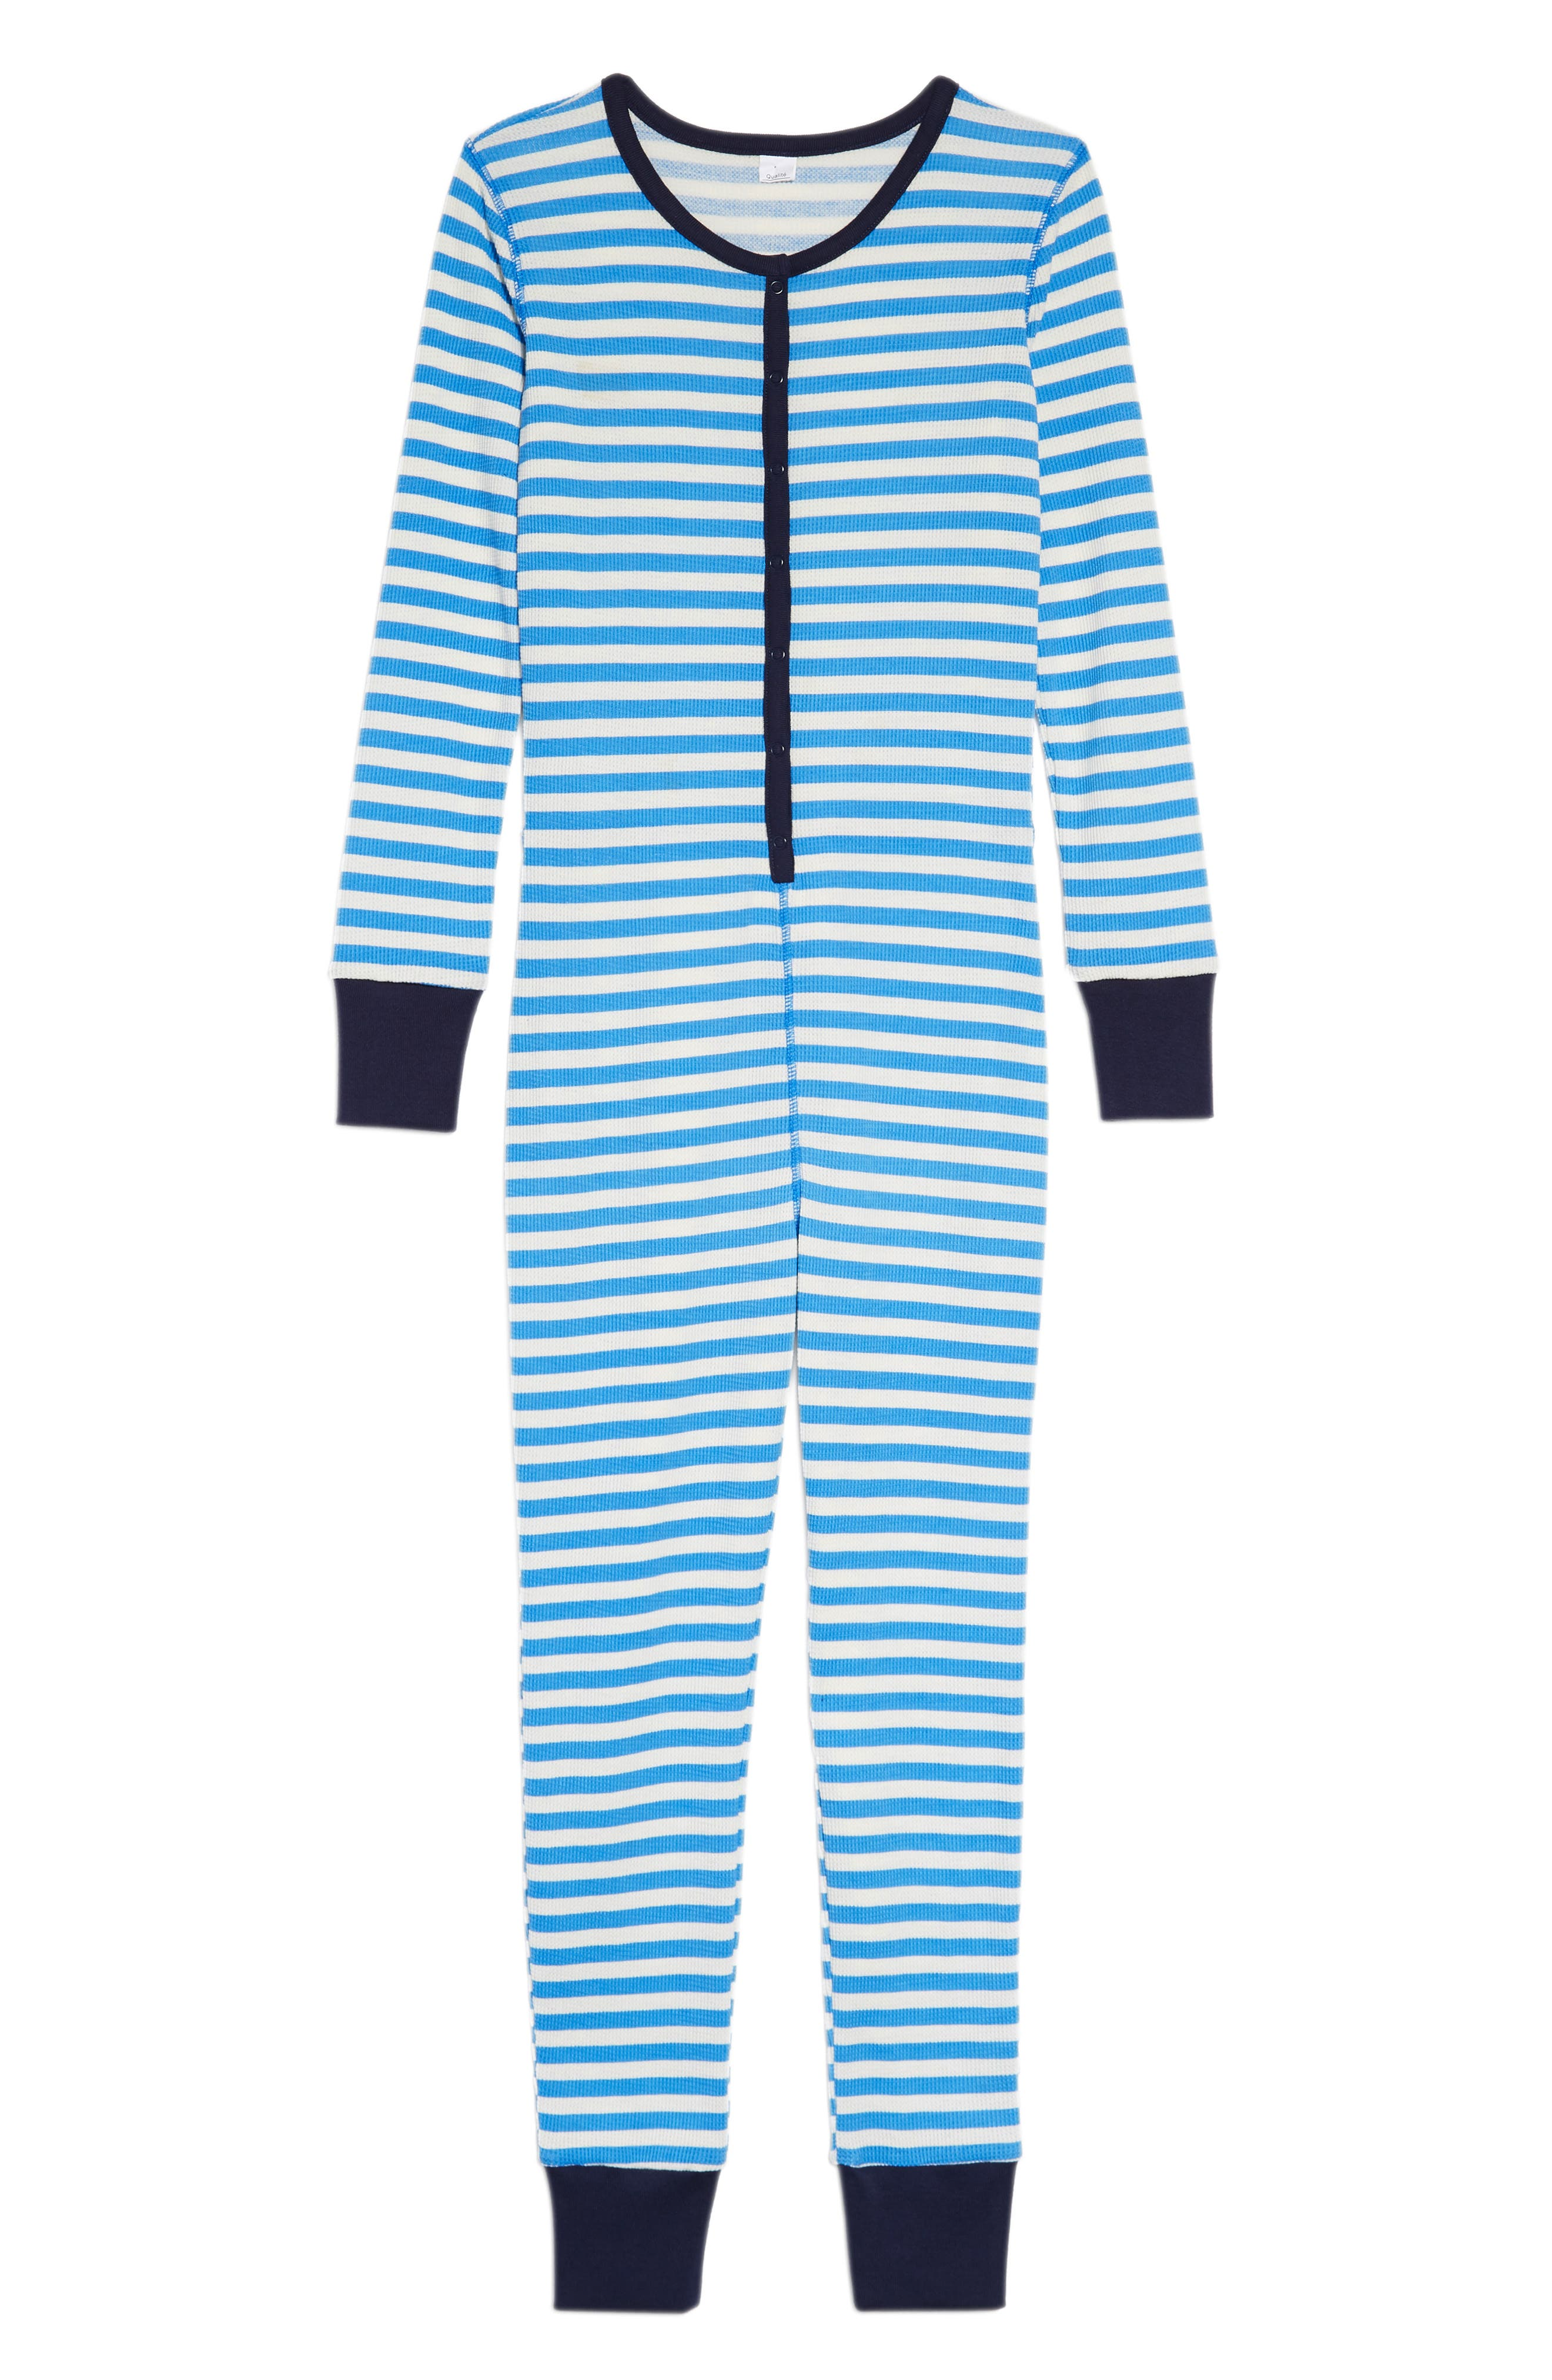 Boys Nordstrom Thermal Fitted OnePiece Pajamas